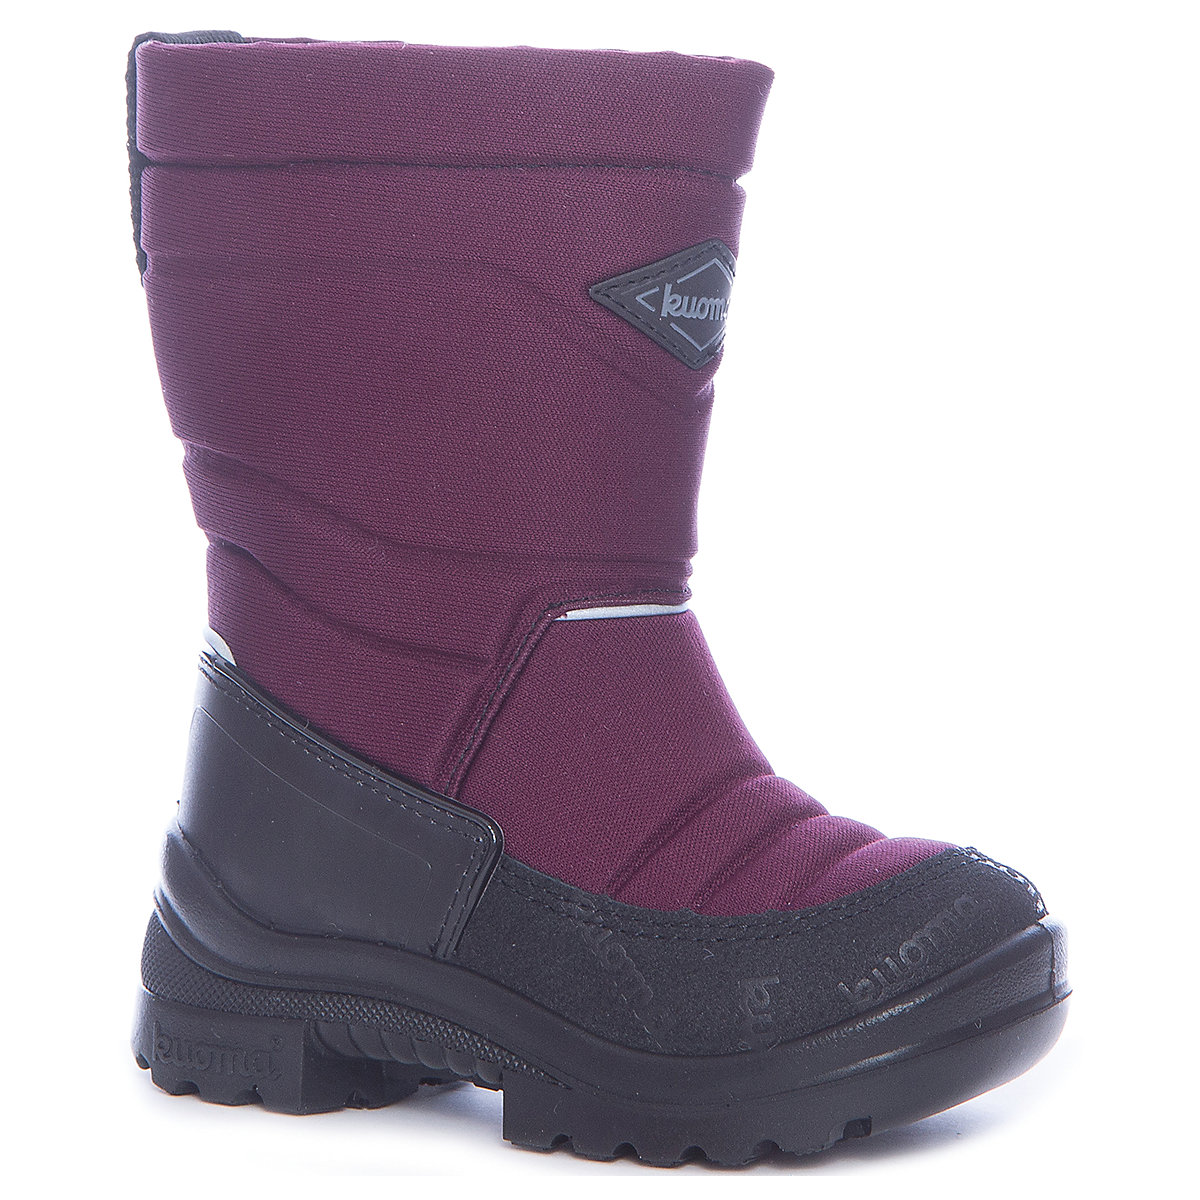 Boots KUOMA for girls 7047333 Valenki Uggi Winter shoes Children Kids